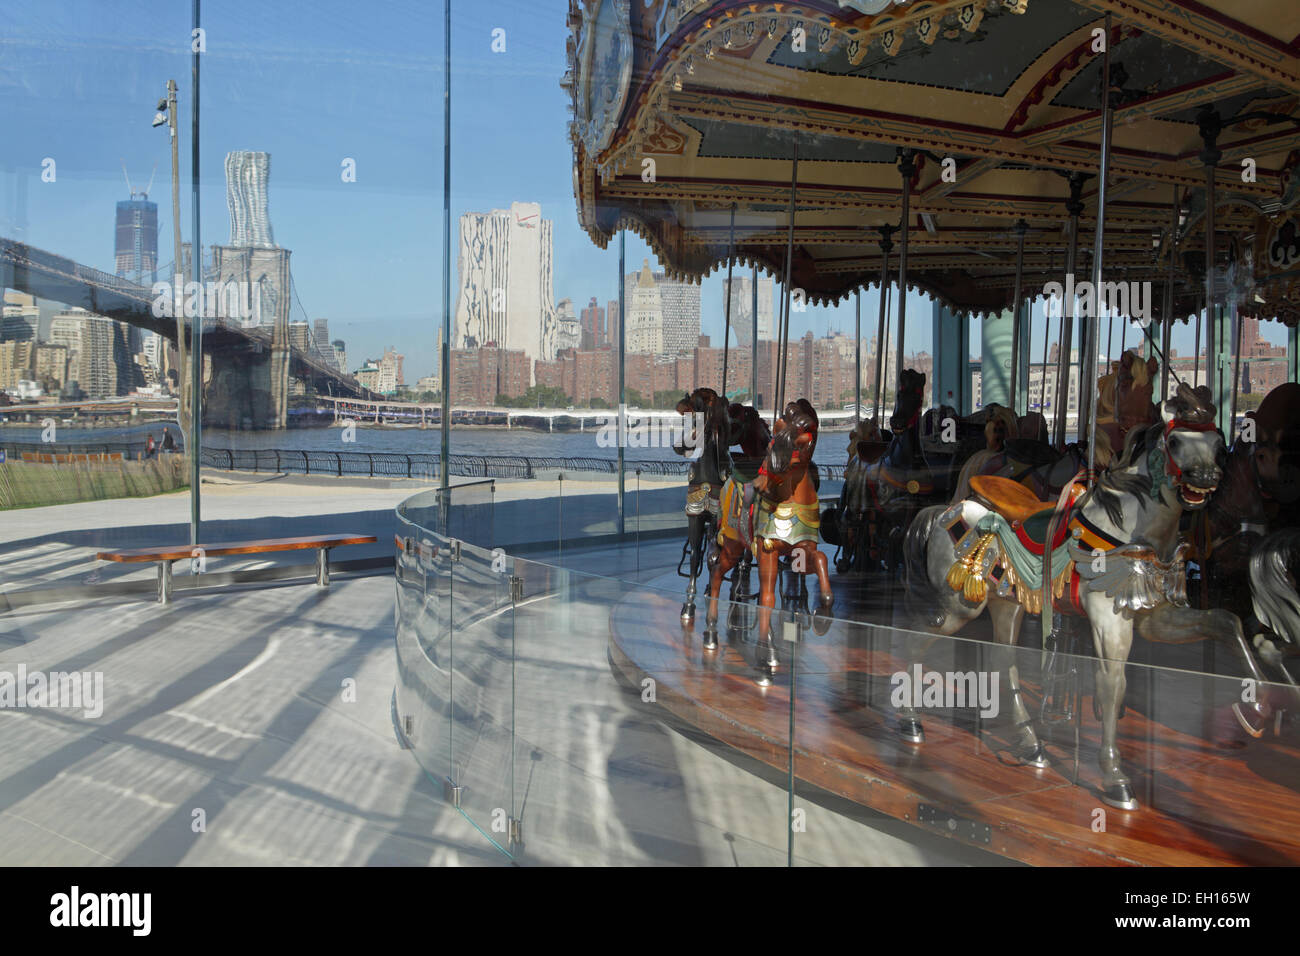 Jane's Carousel in Brooklyn Bridge Park with the Brooklyn Bridge in the background - Stock Image